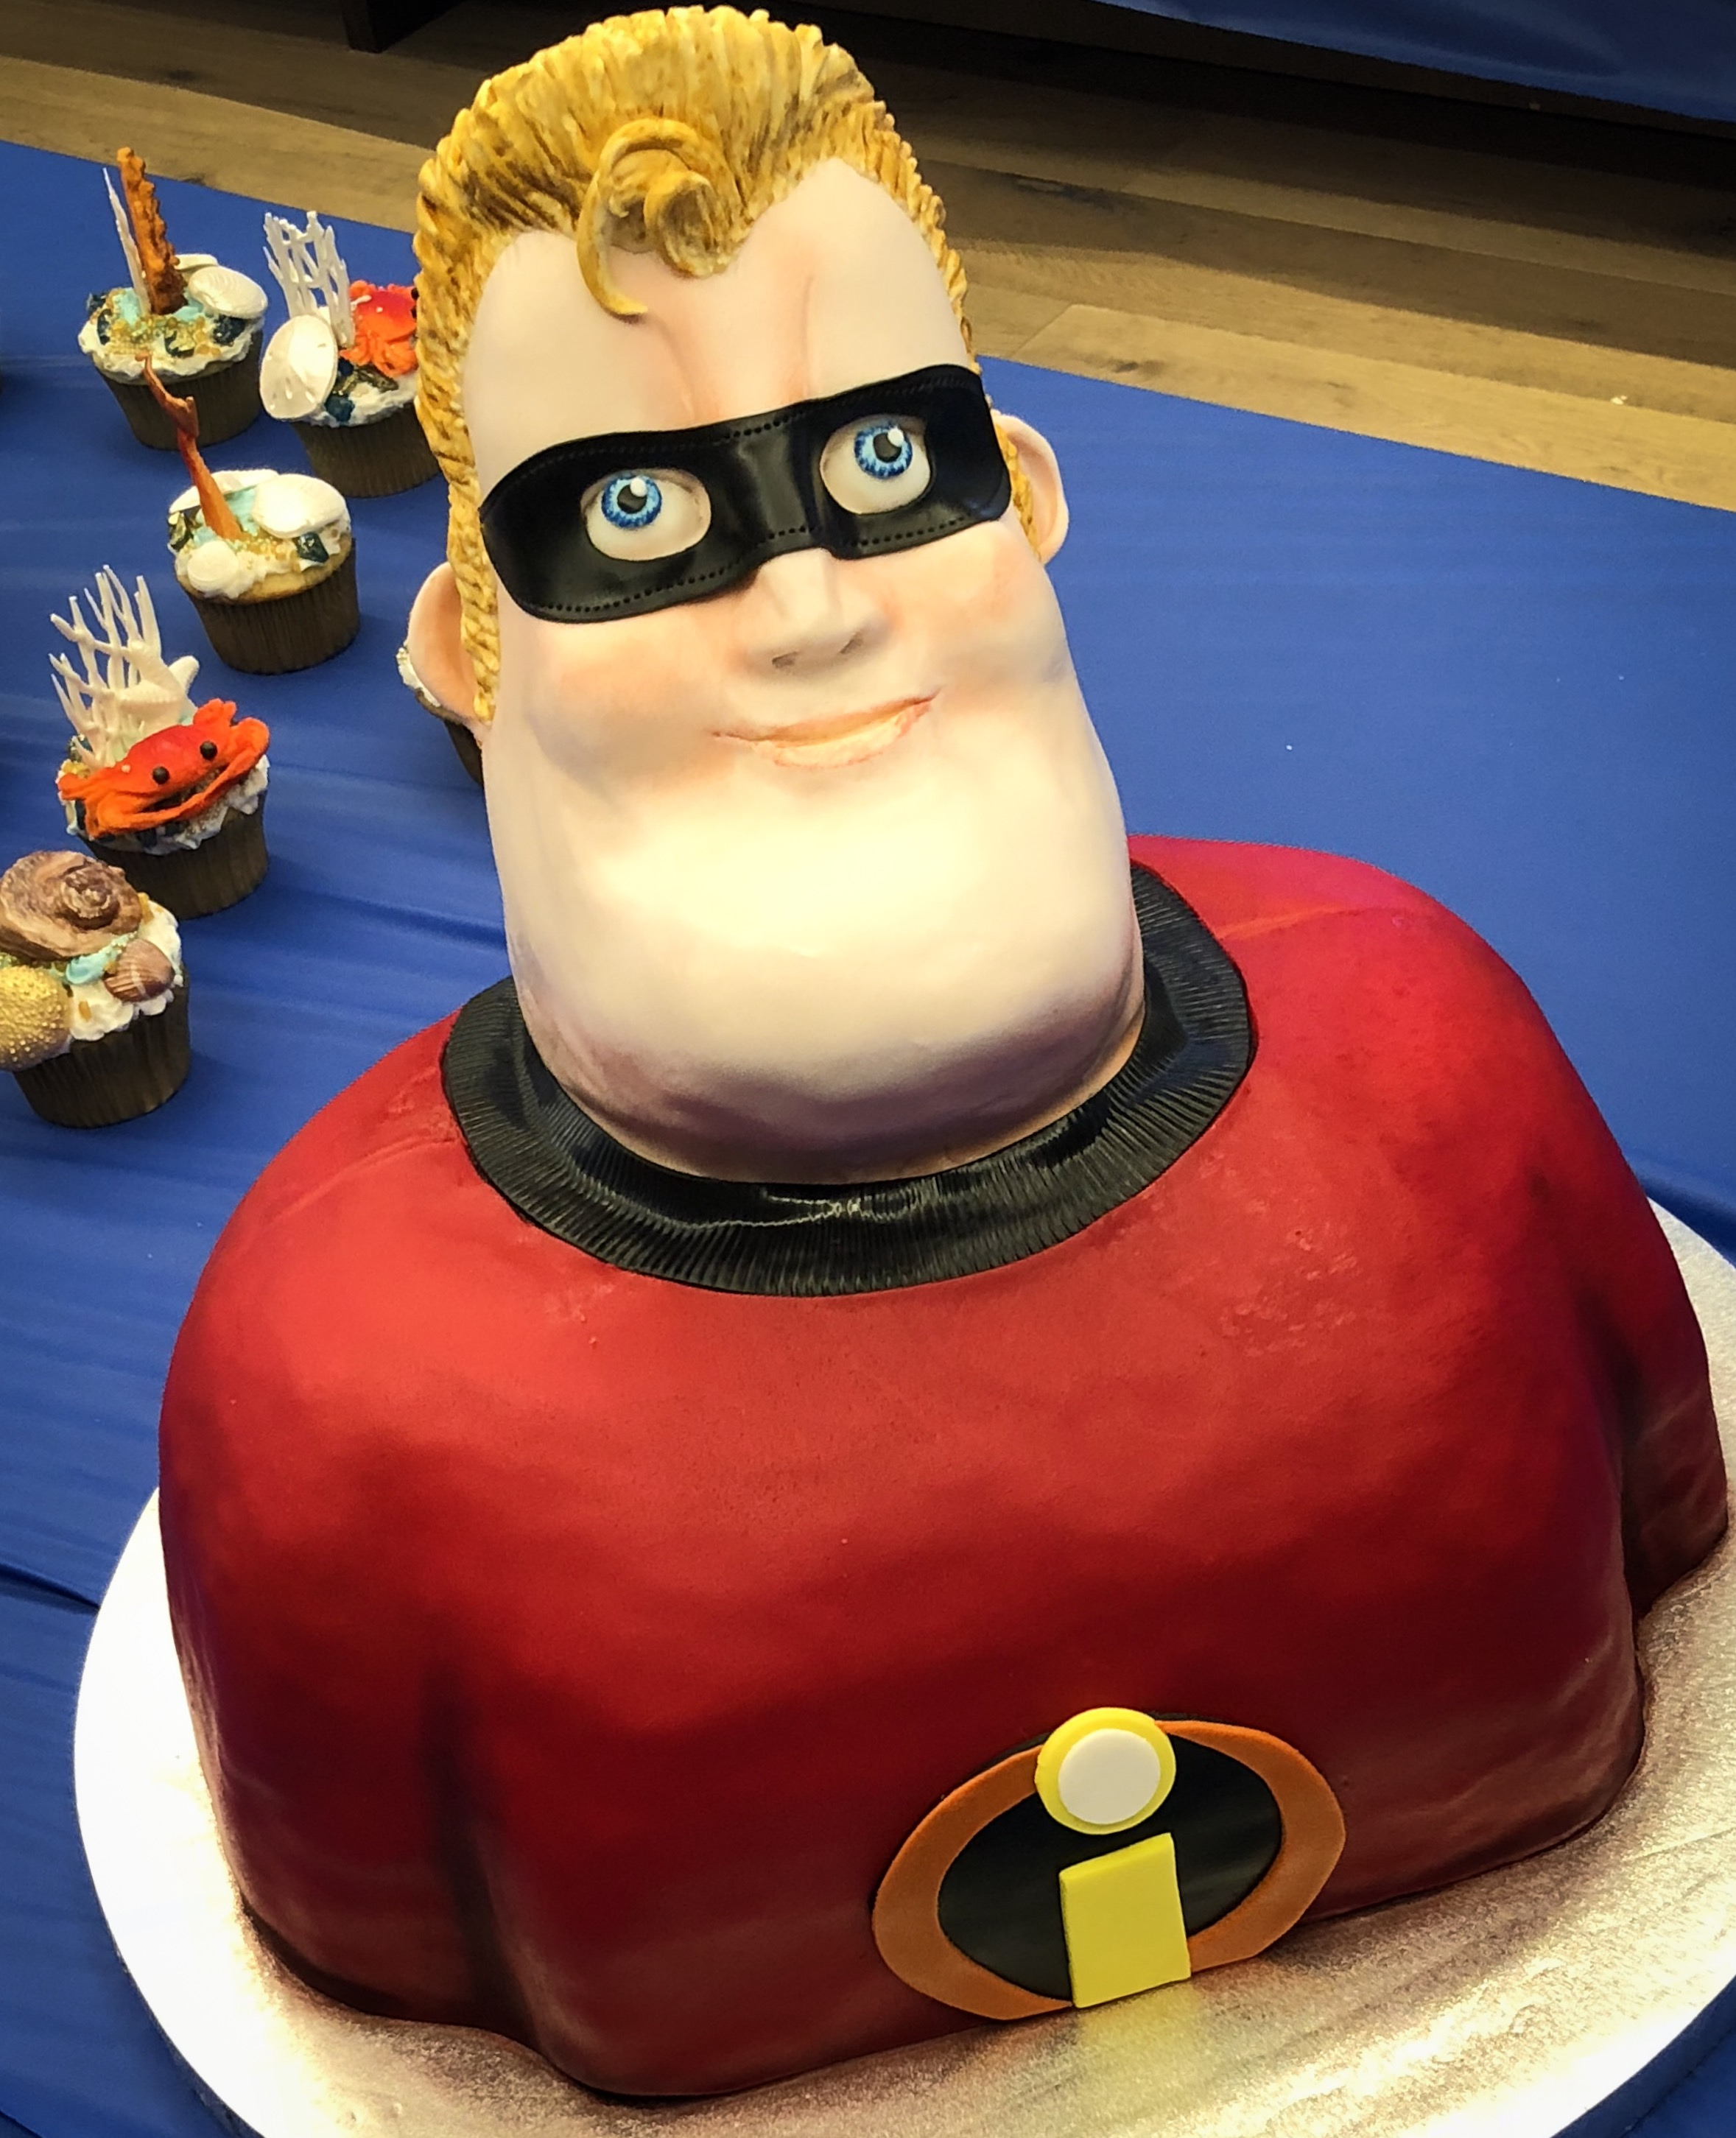 A fondant cake of Mr. Incredible's bust in his supersuit and mask